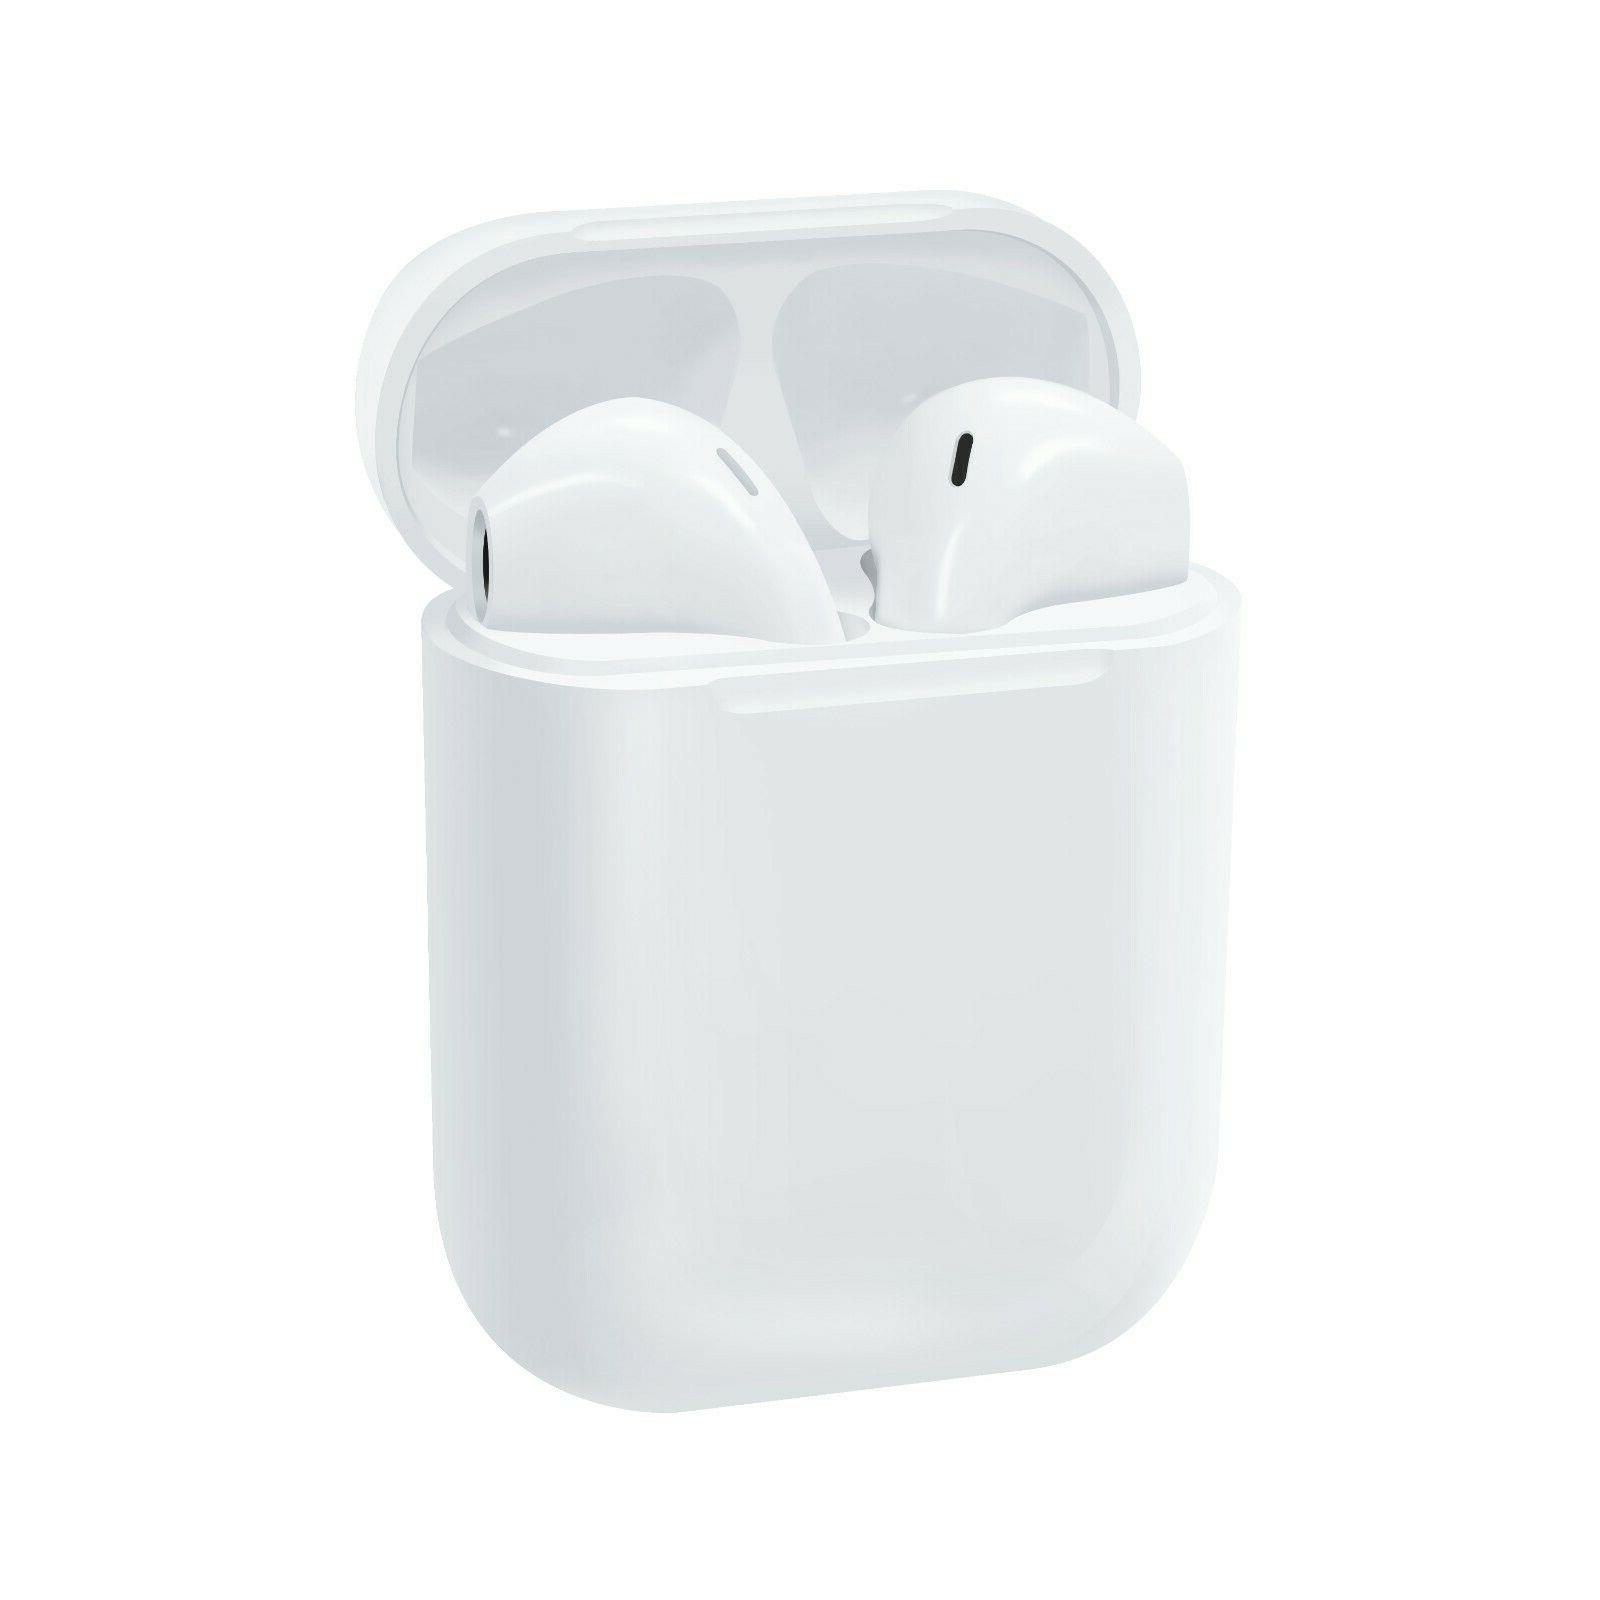 wireless earbuds bluetooth headphones compatible with apple